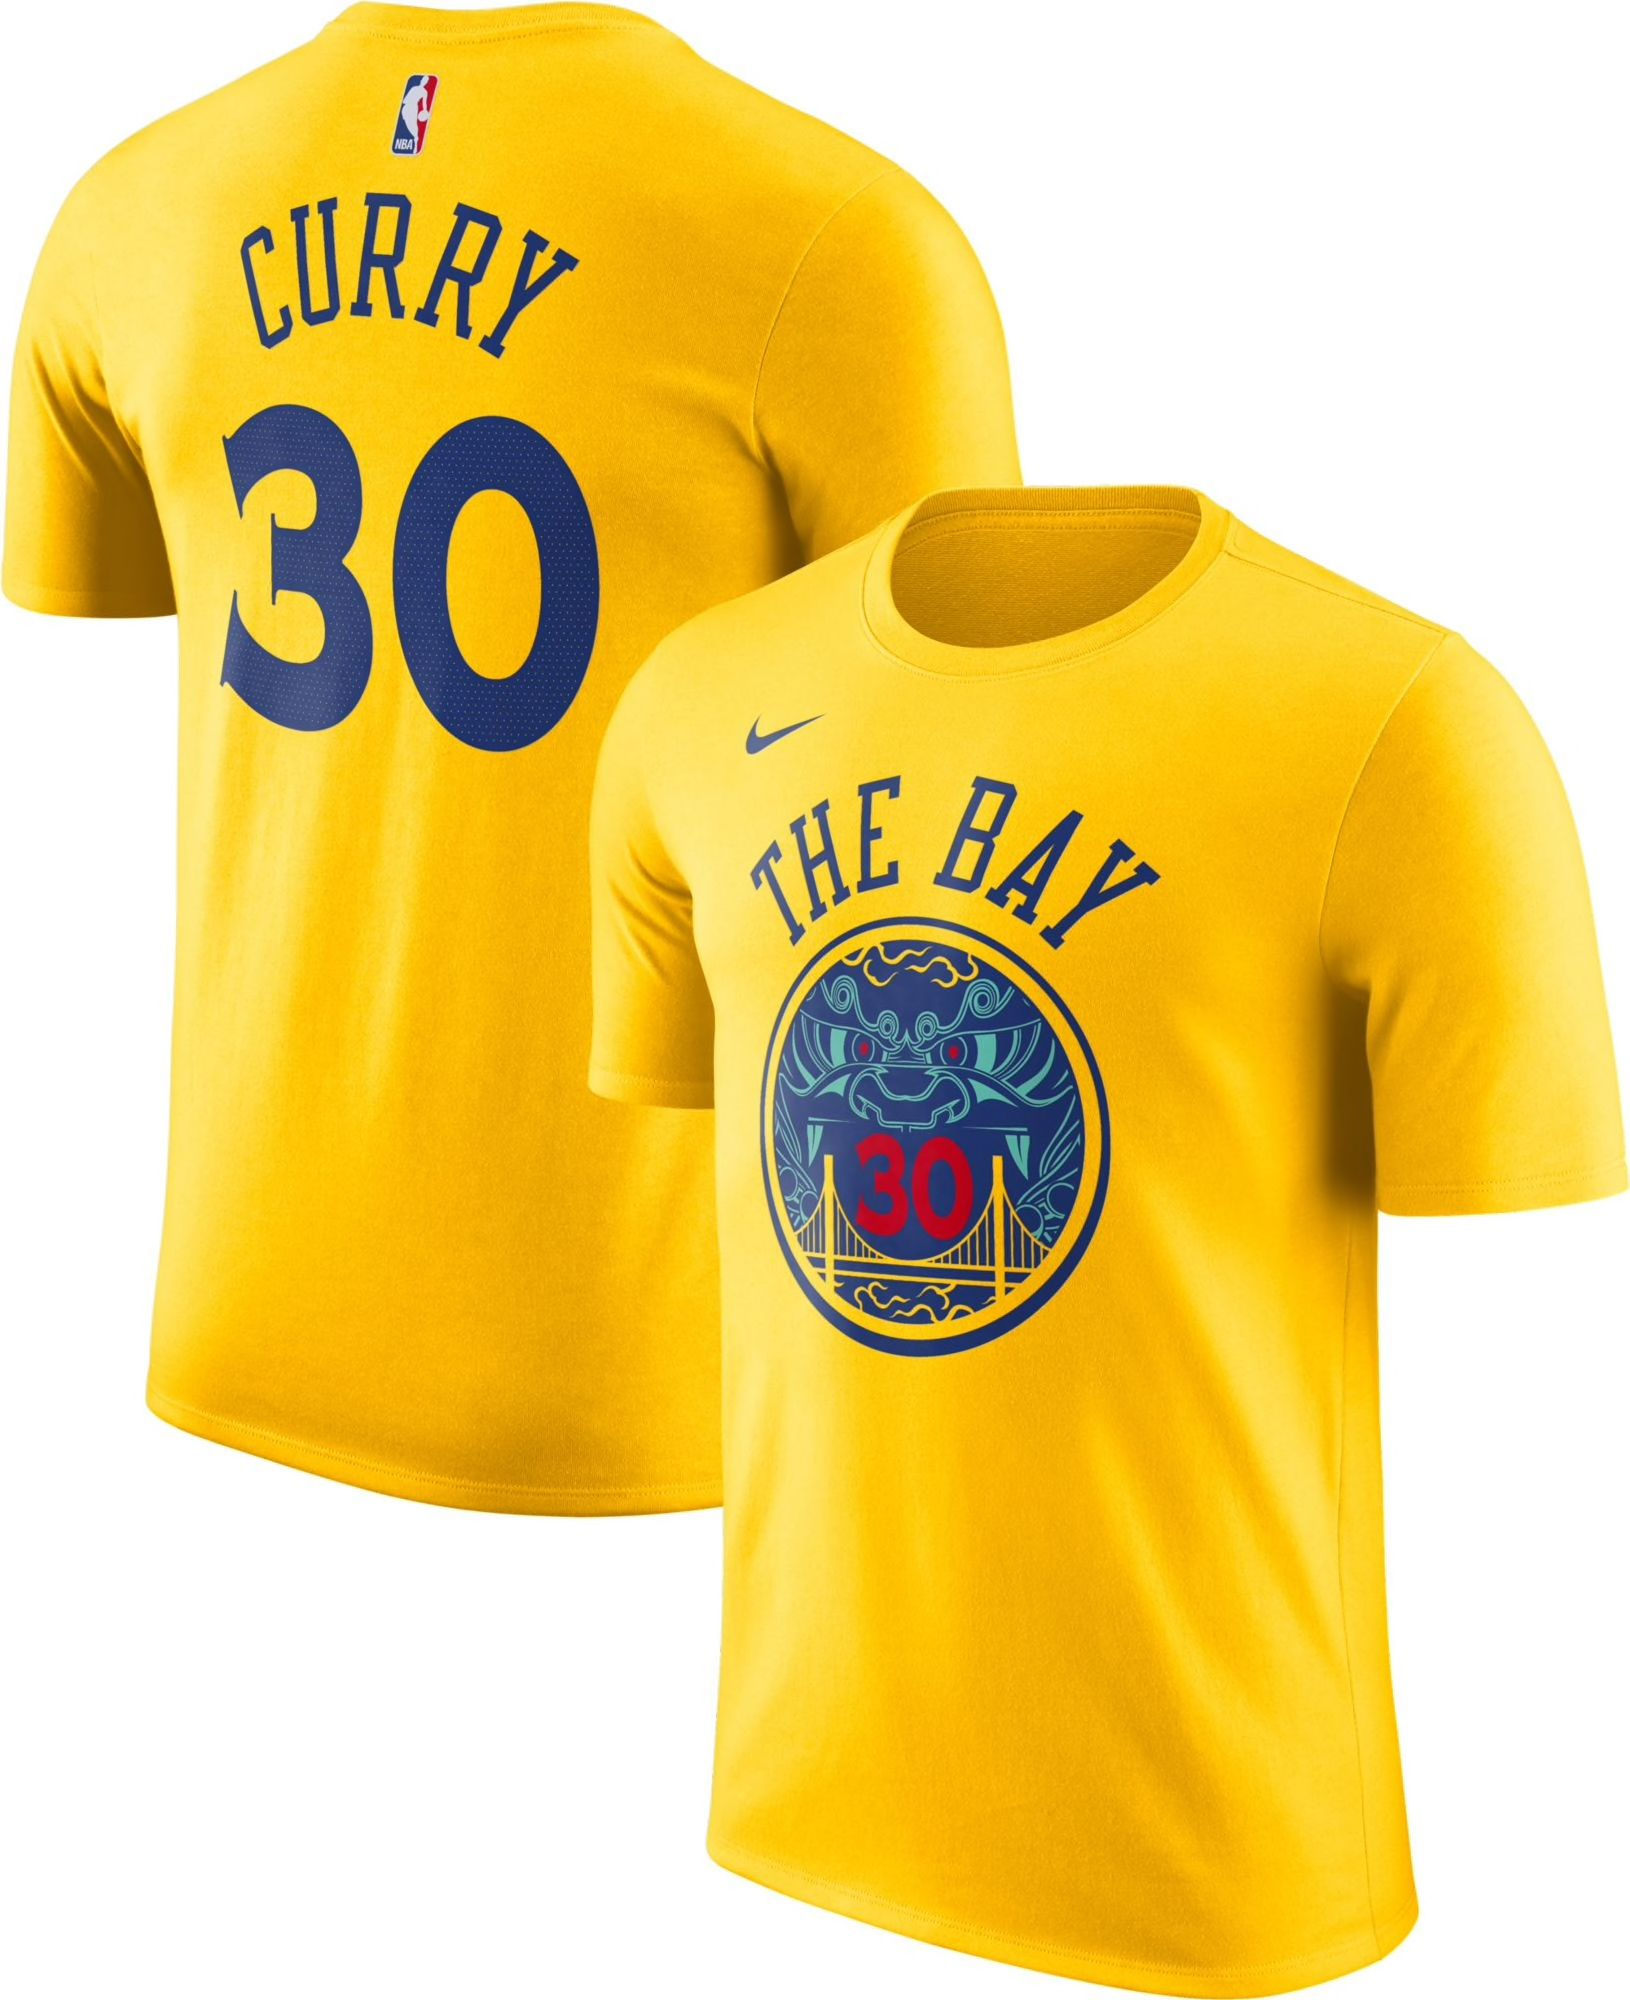 66bbe610f2c Nike 2018 Golden State Warriors City Edition Steph Curry Shirt ...